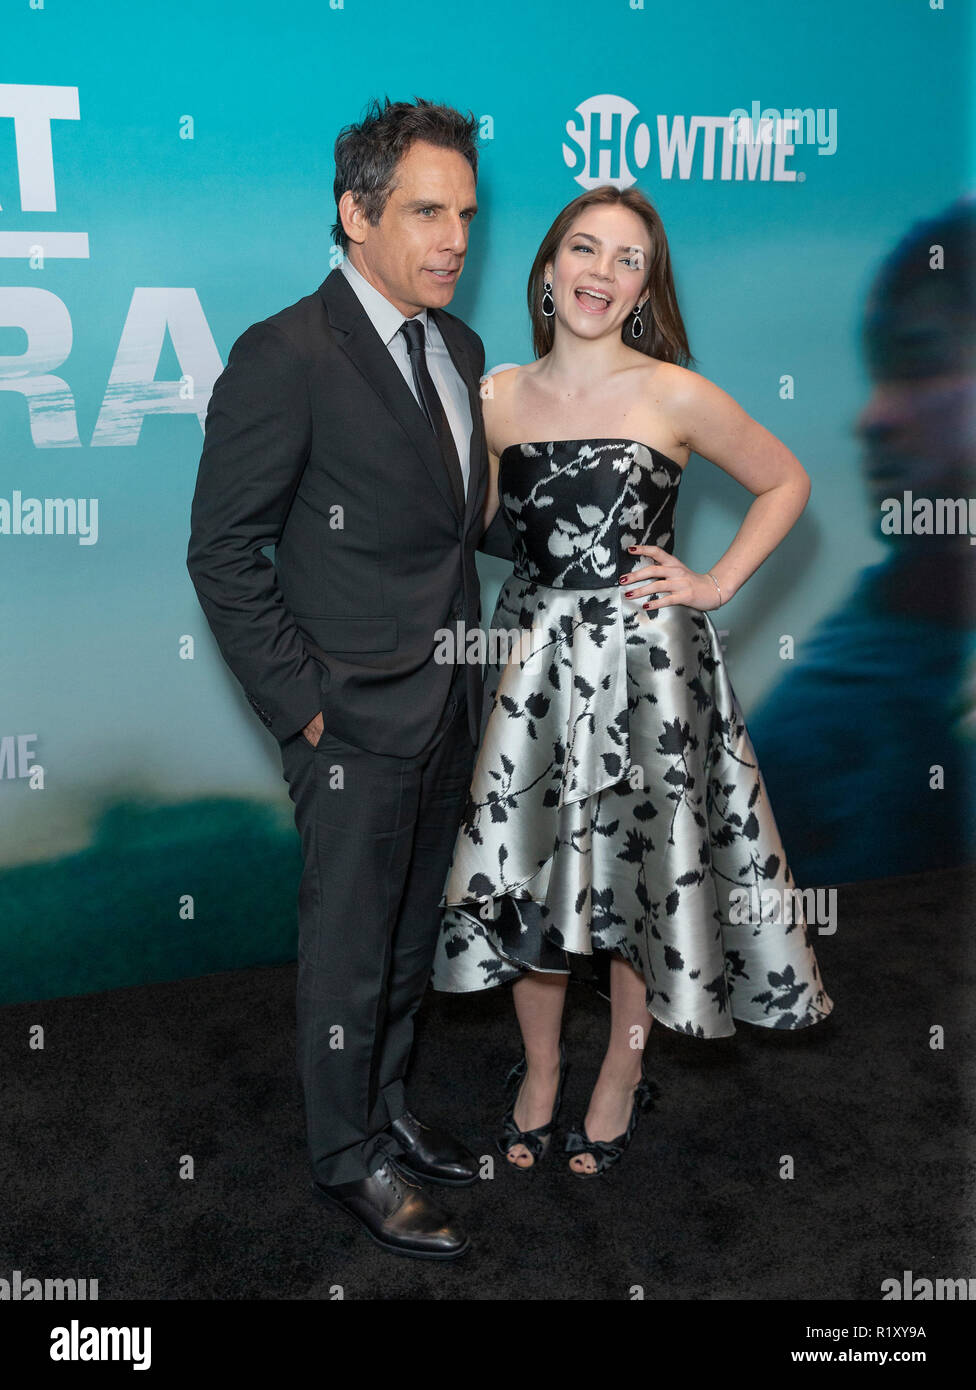 New York, Stati Uniti. Xiv Nov, 2018. Ben Stiller e Ella Olivia Stiller partecipare alla serie di Showtime Premiere di sfuggire a Dannemora a Alice Tully Hall, Lincoln Center Credito: Lev Radin/Pacific Press/Alamy Live News Foto Stock